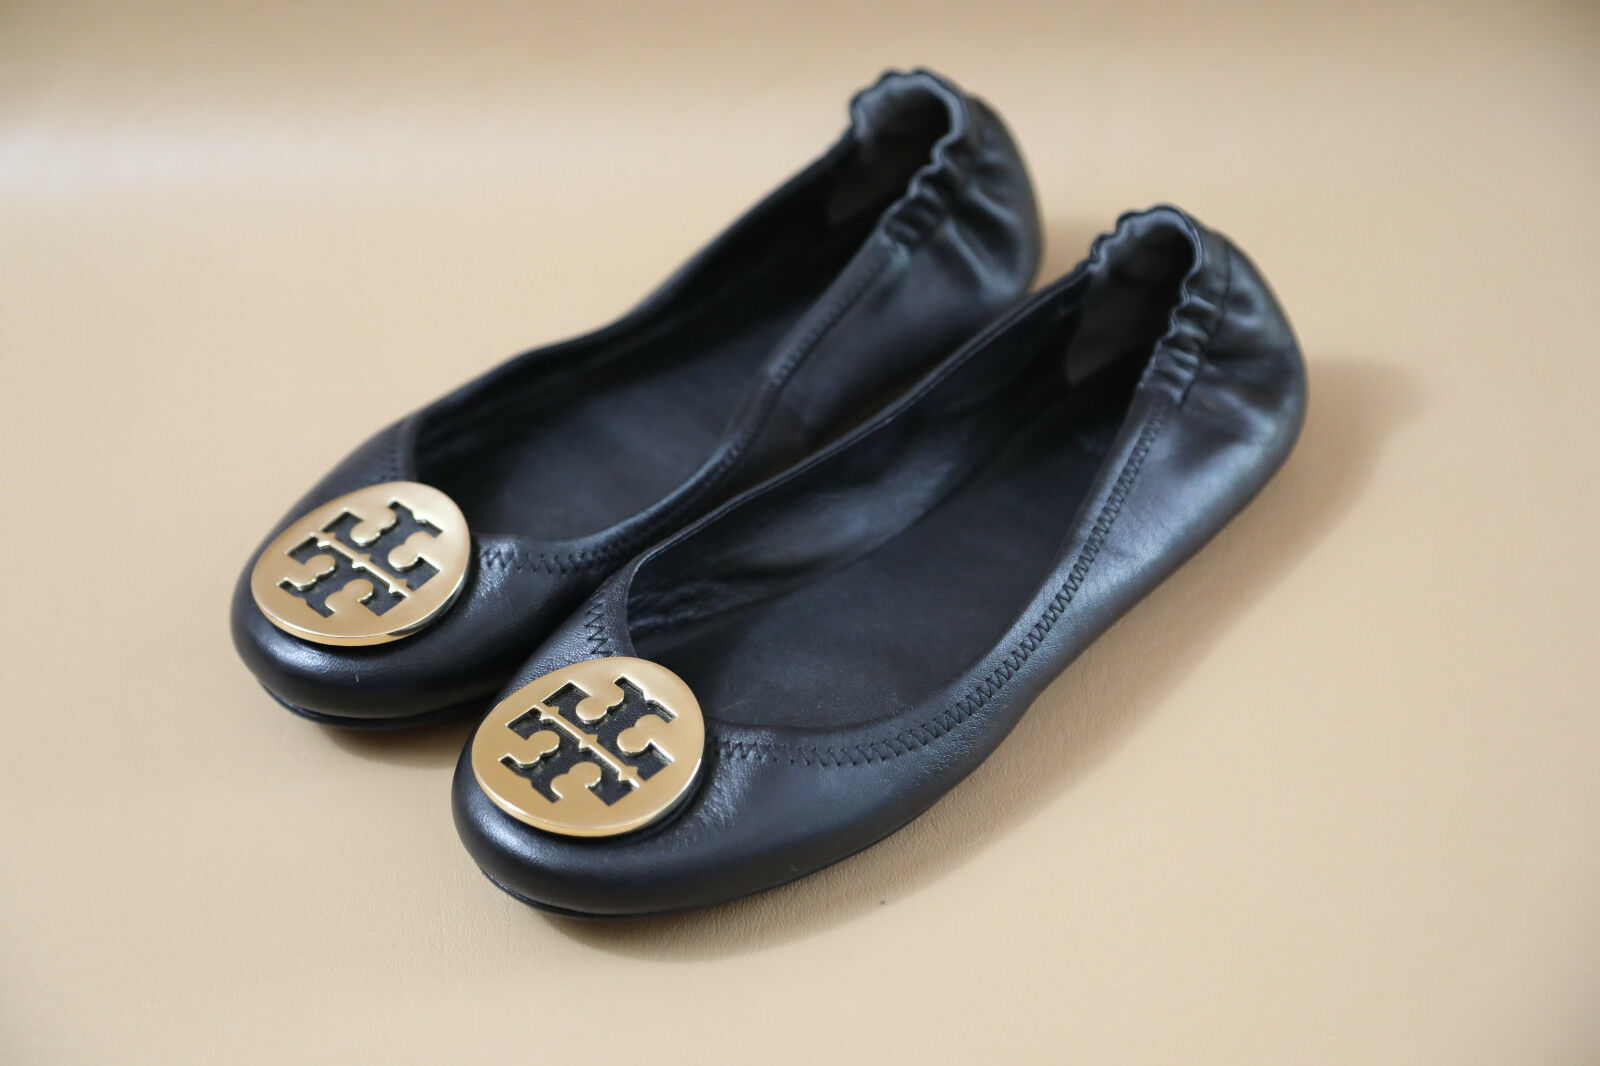 Tory Burch 'Minnie' Travel  Ballet  Travel Flat Size 6 M  retail $228  gold logo d80f74